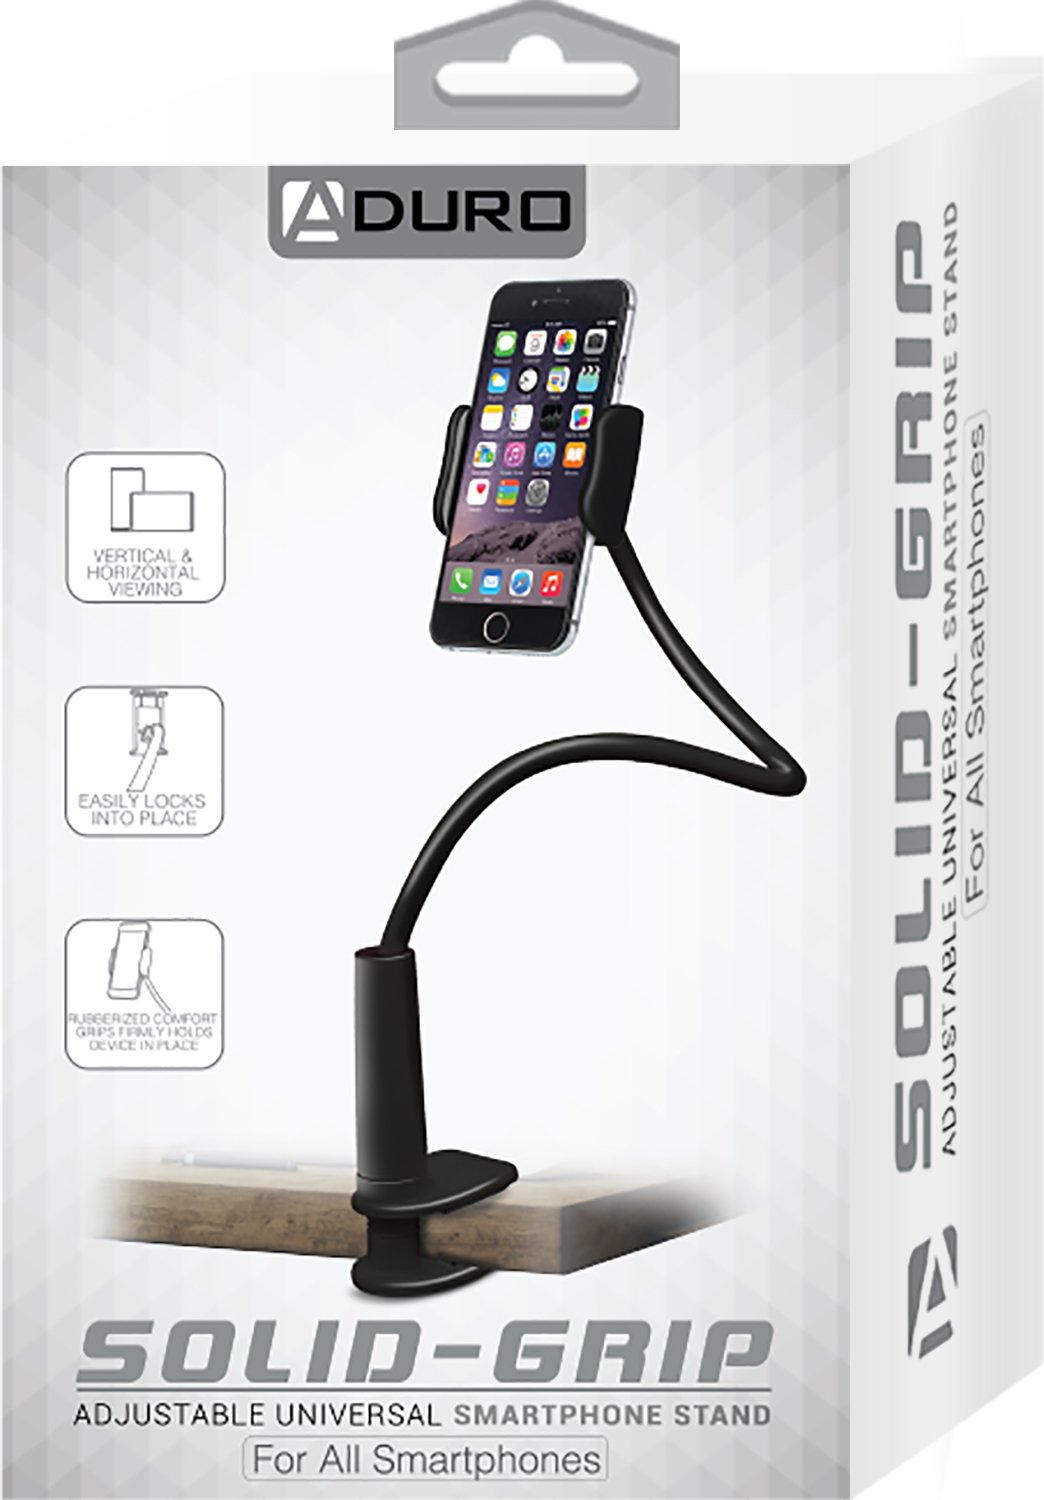 Aduro Solid-Grip 360 Adjustable Universal Gooseneck Smartphone Stand for Desk – Durable, Rubberized, Mount w/Holder (Black) by Aduro (Image #9)